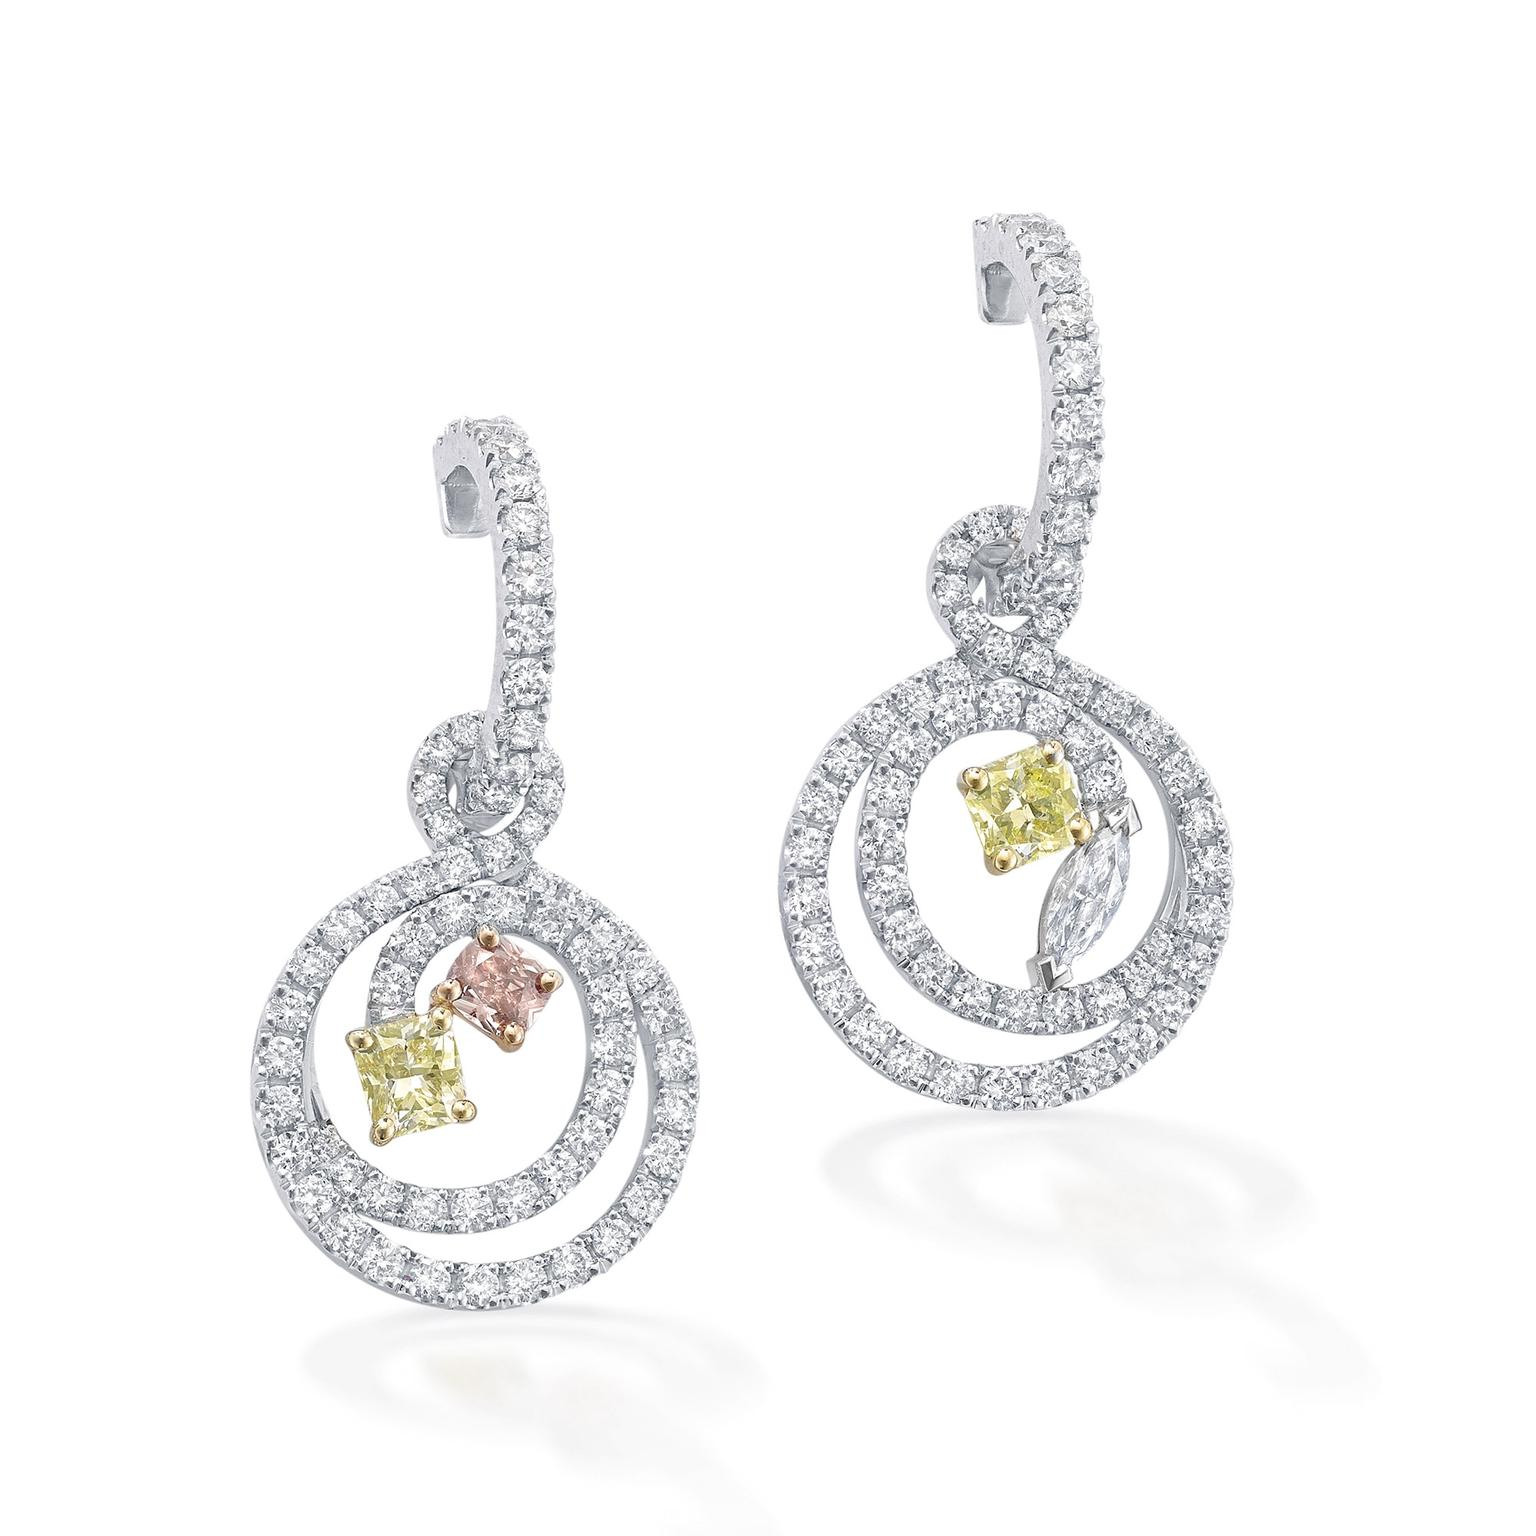 Boodles Finely Coloured Swirl diamond earrings